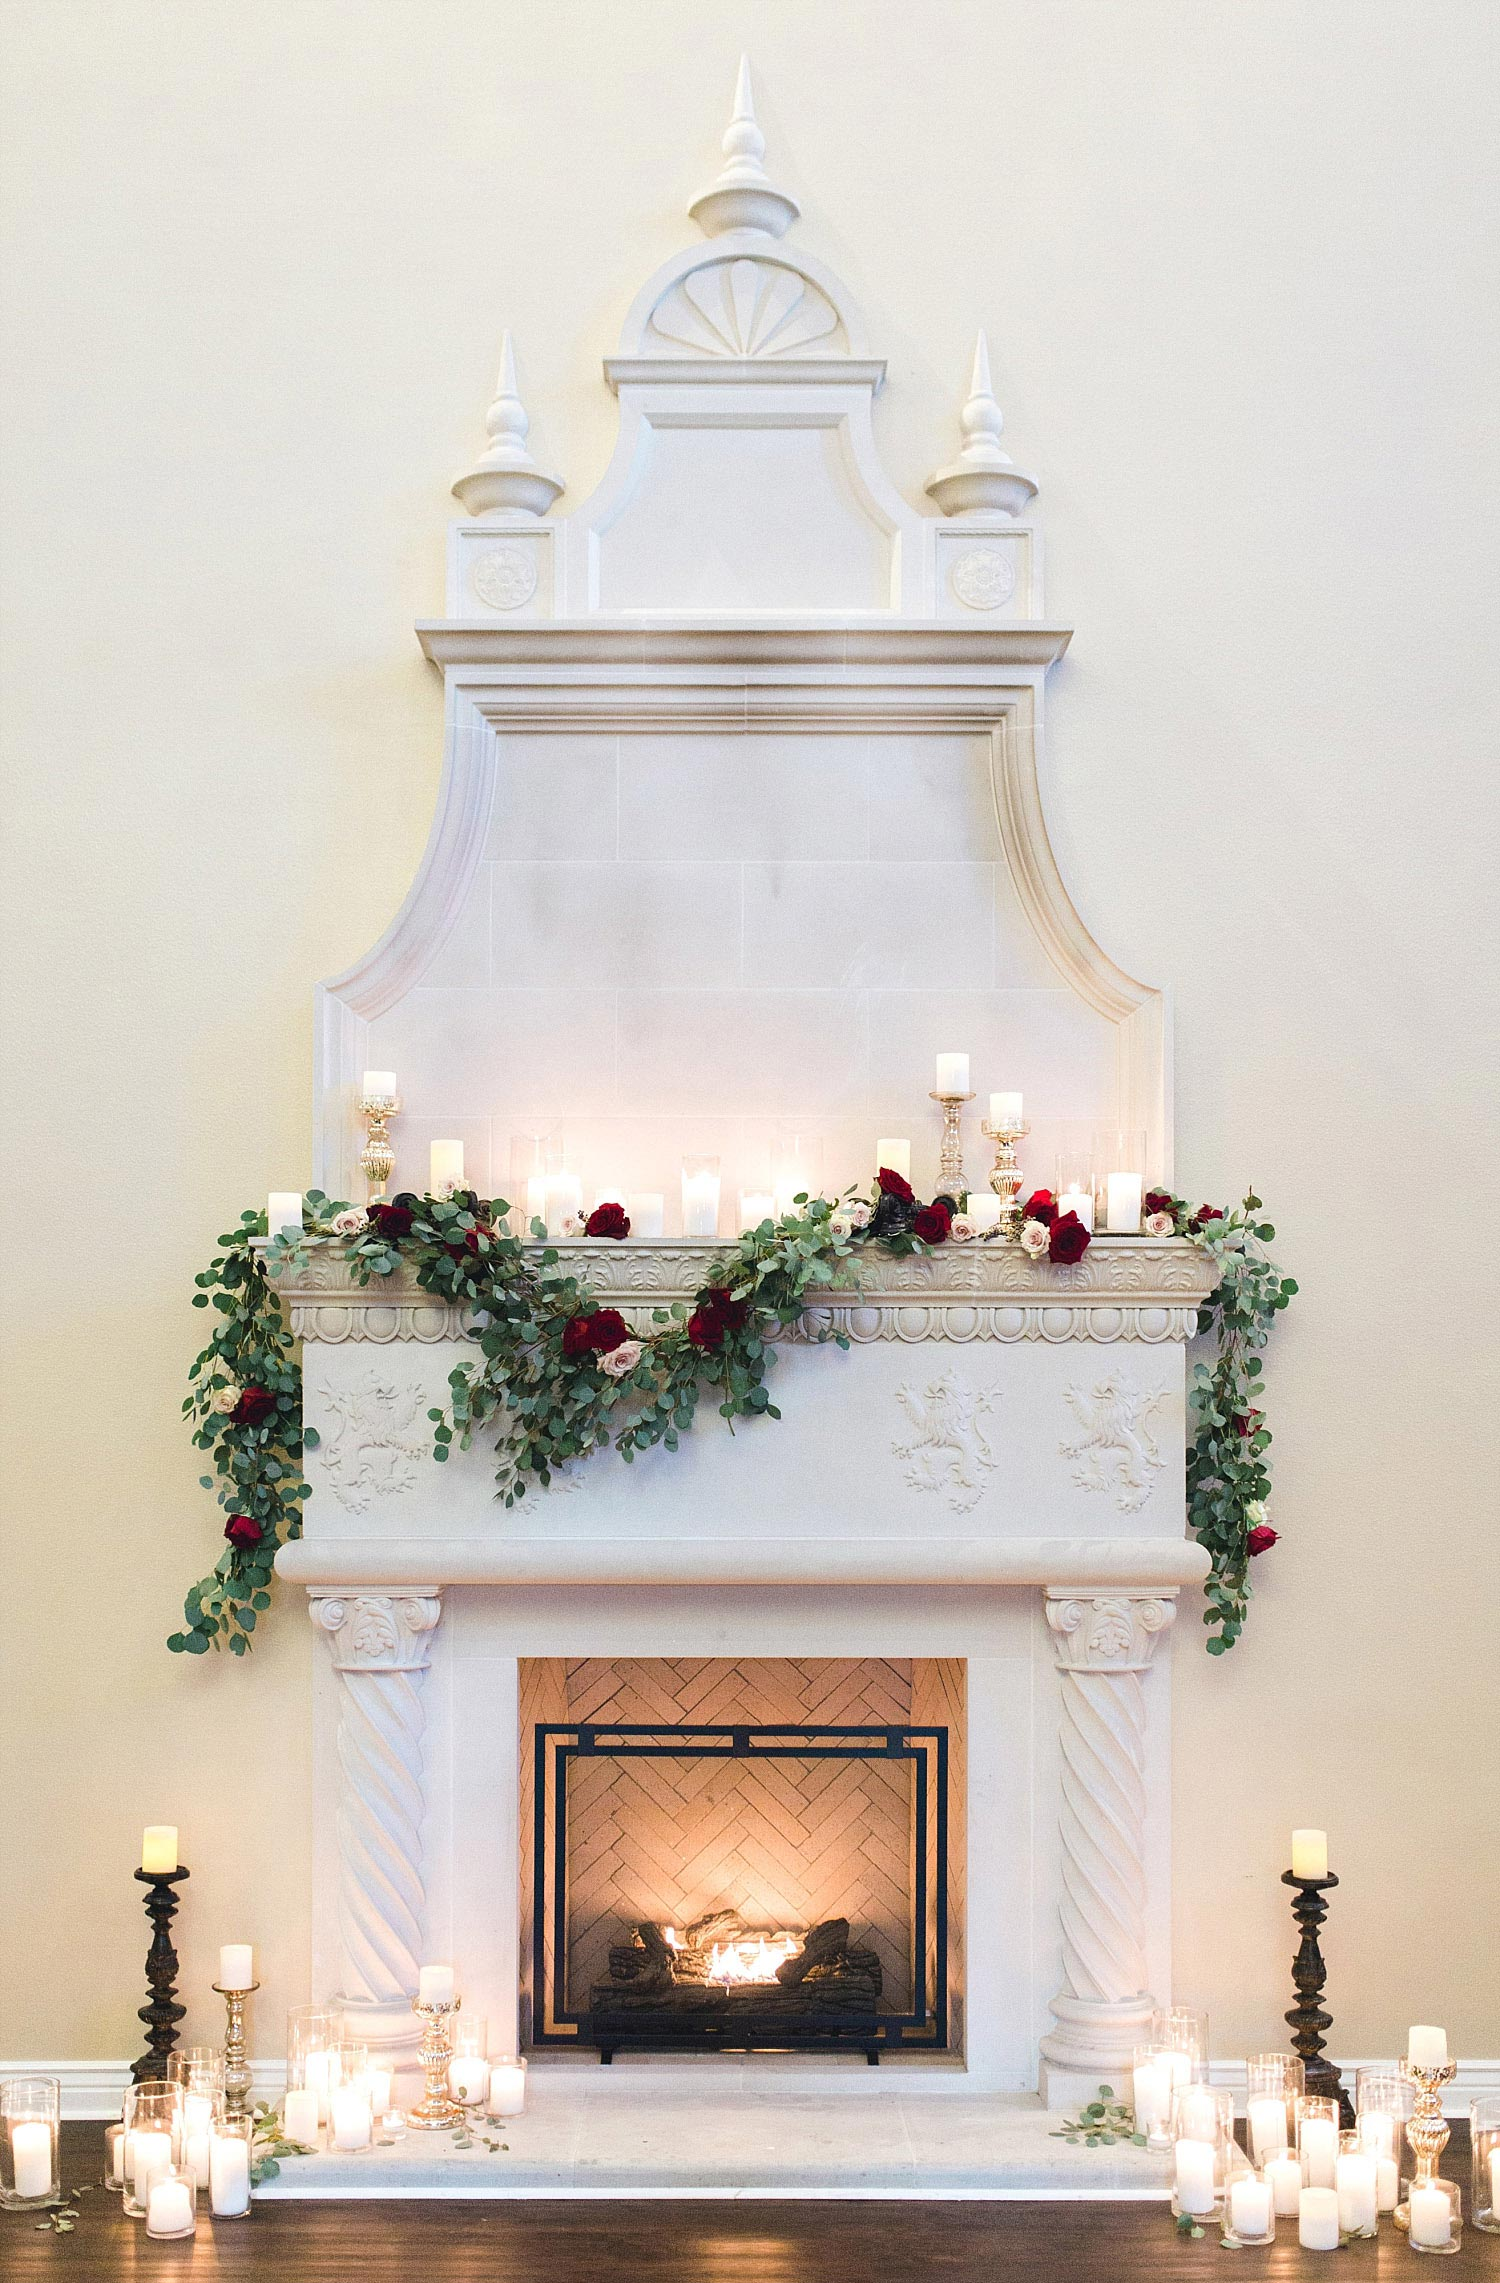 Castle at Rockwall wedding white fireplace with garland and candles photo